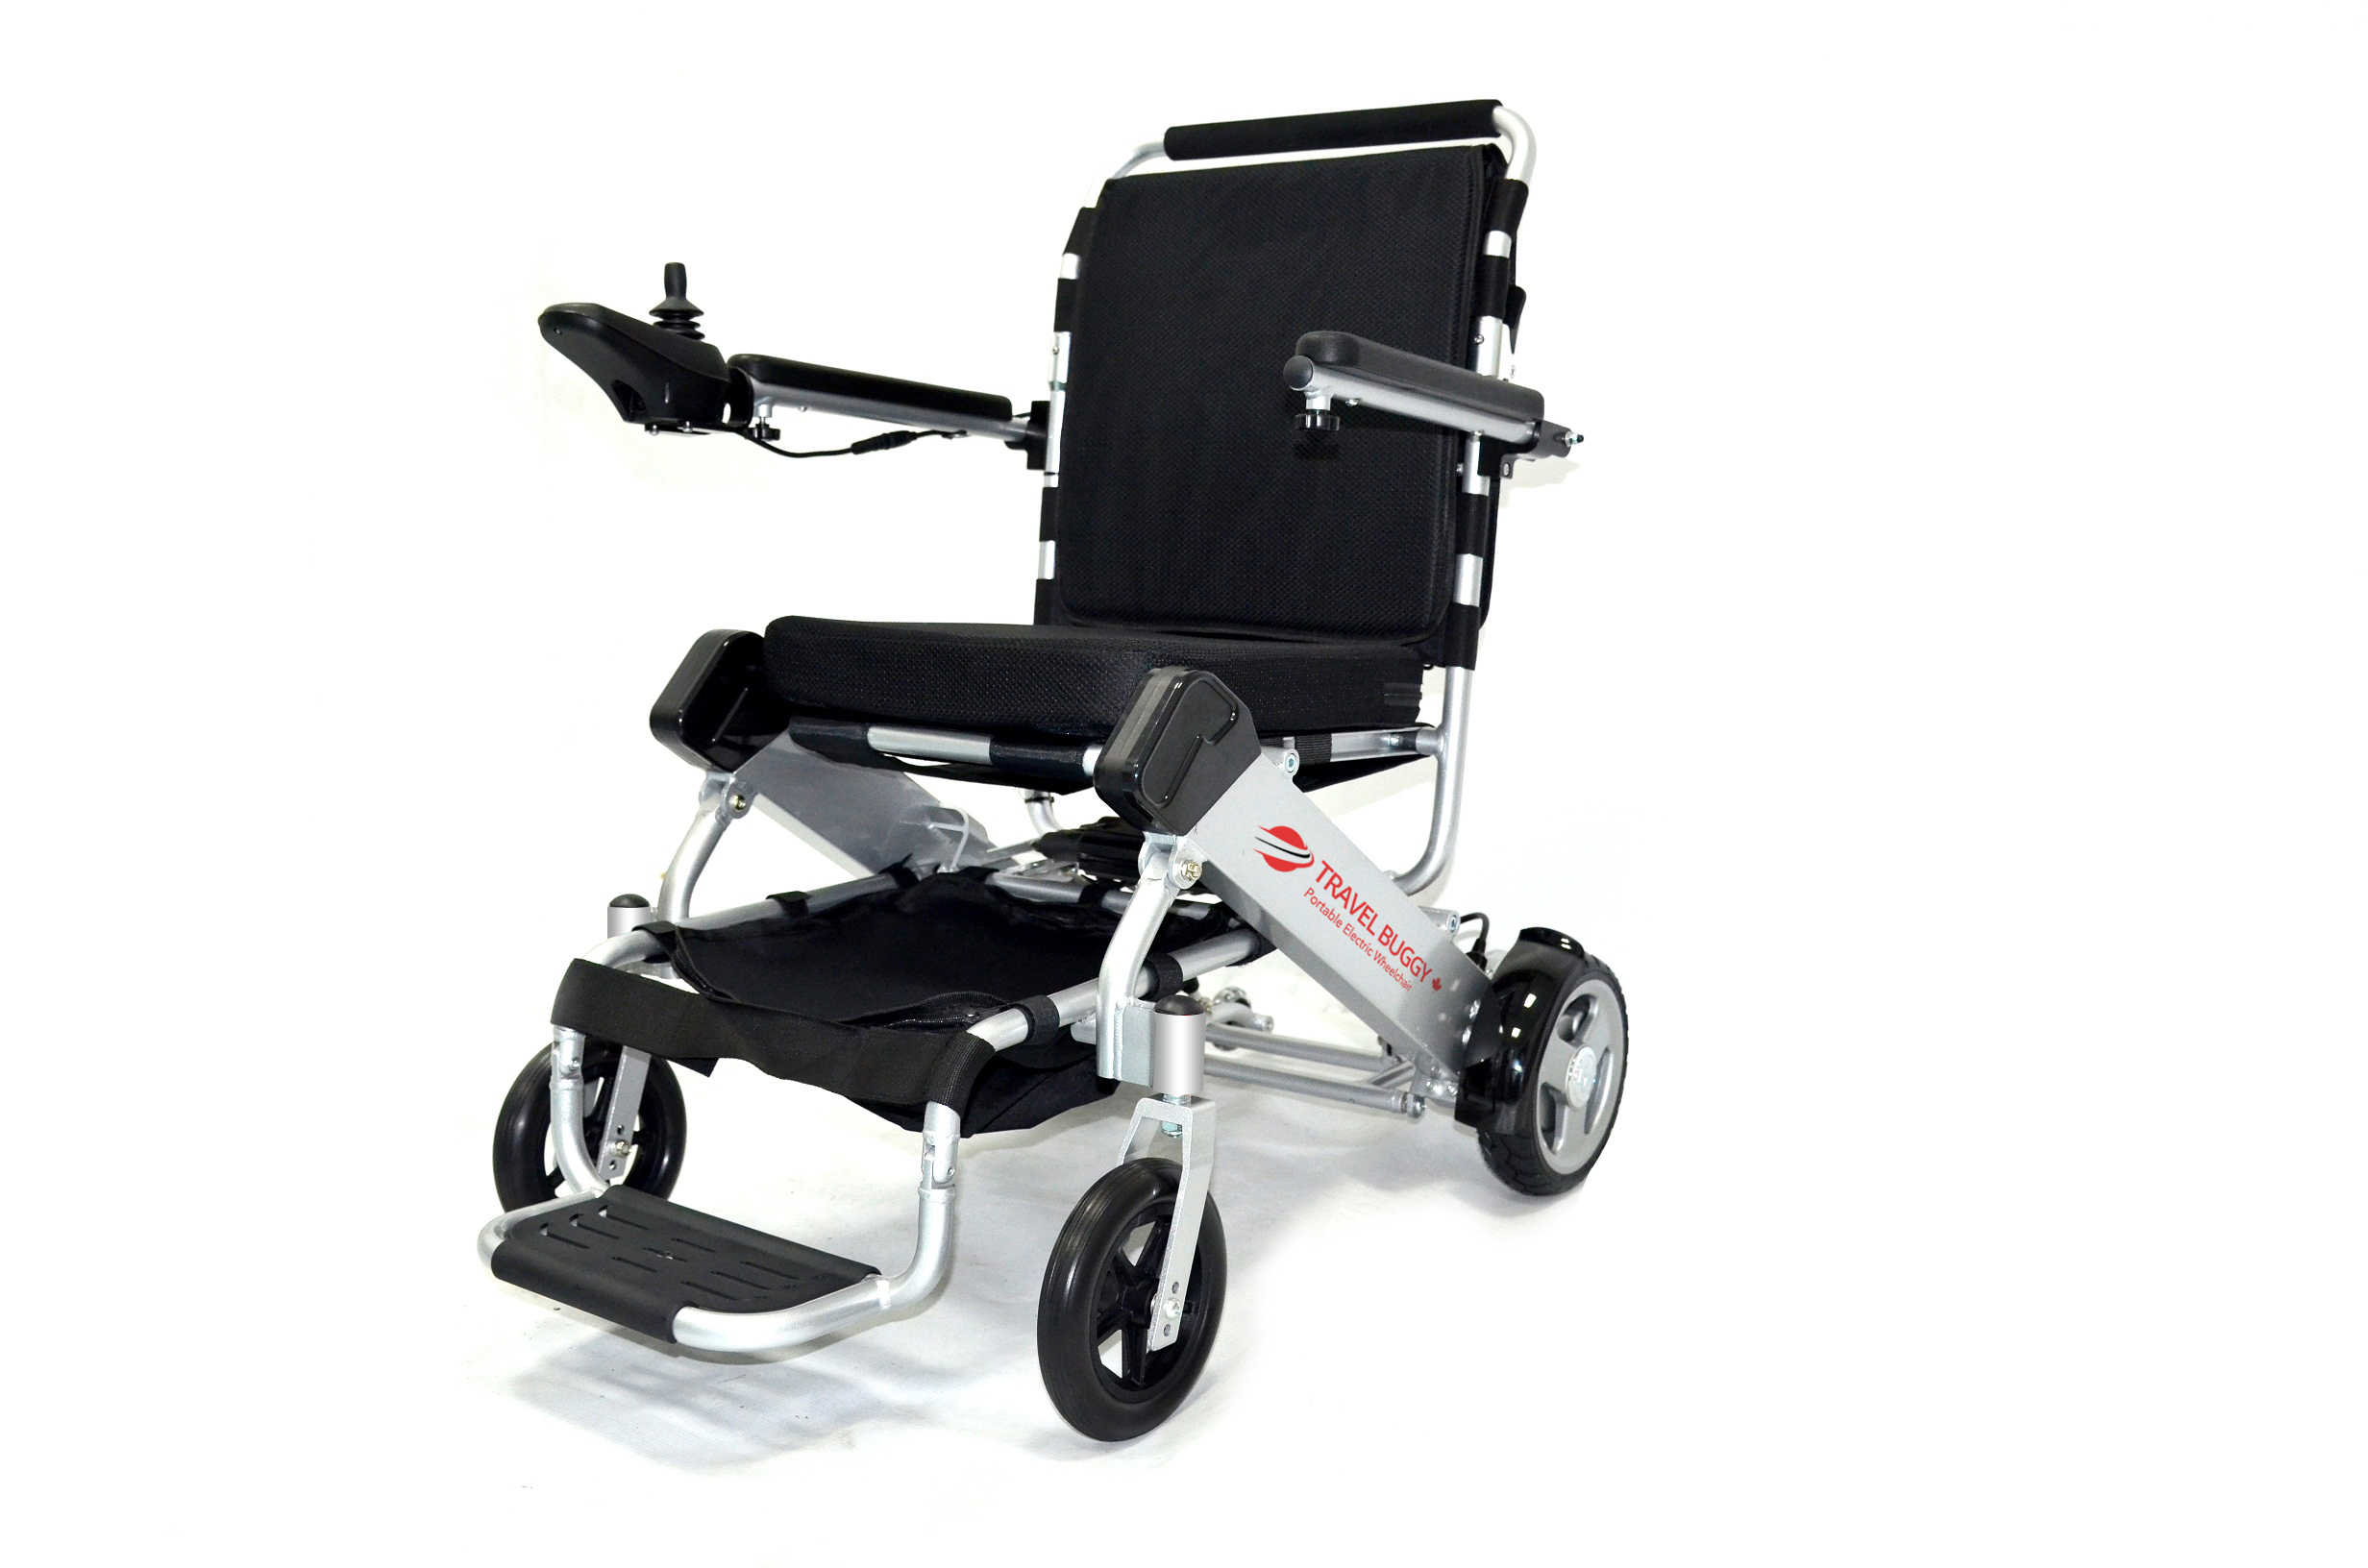 Choosing between a Scooter and a Power Wheelchair